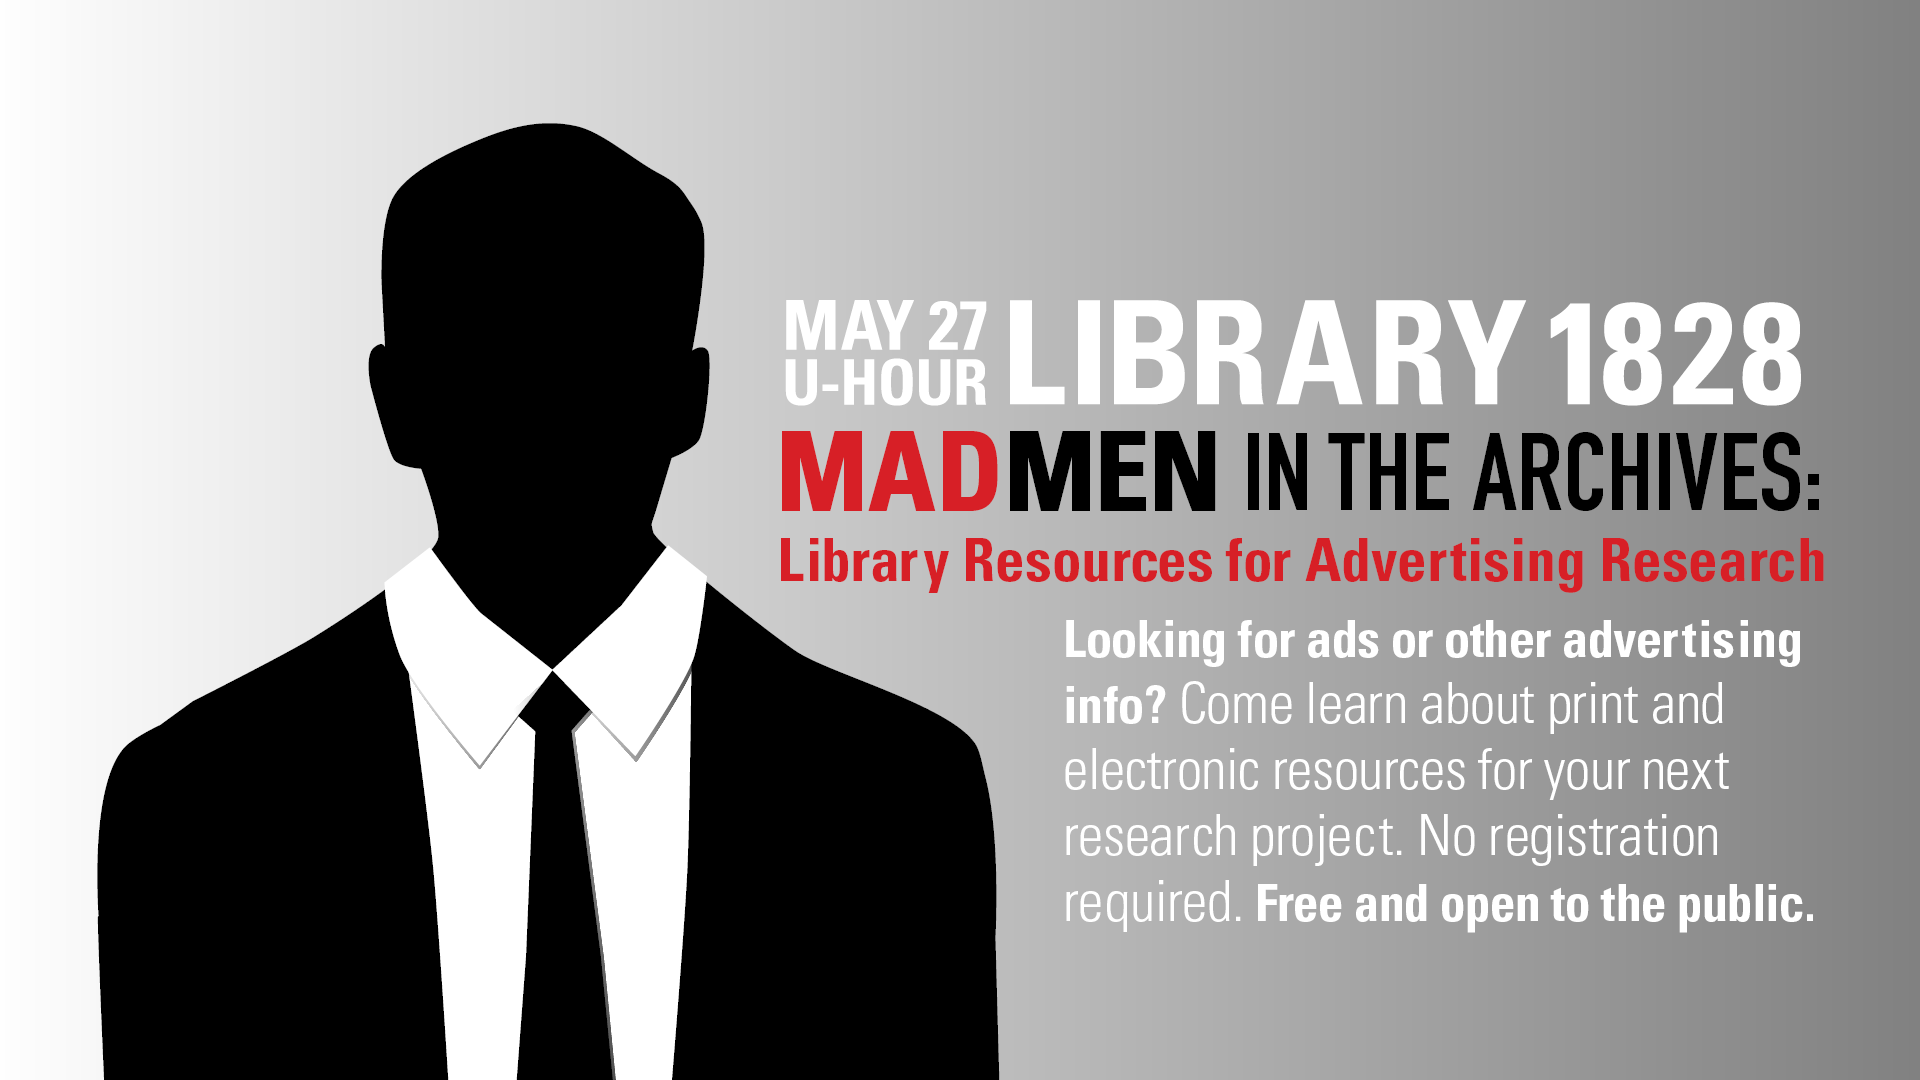 Graphic: Mad Men in the Archives